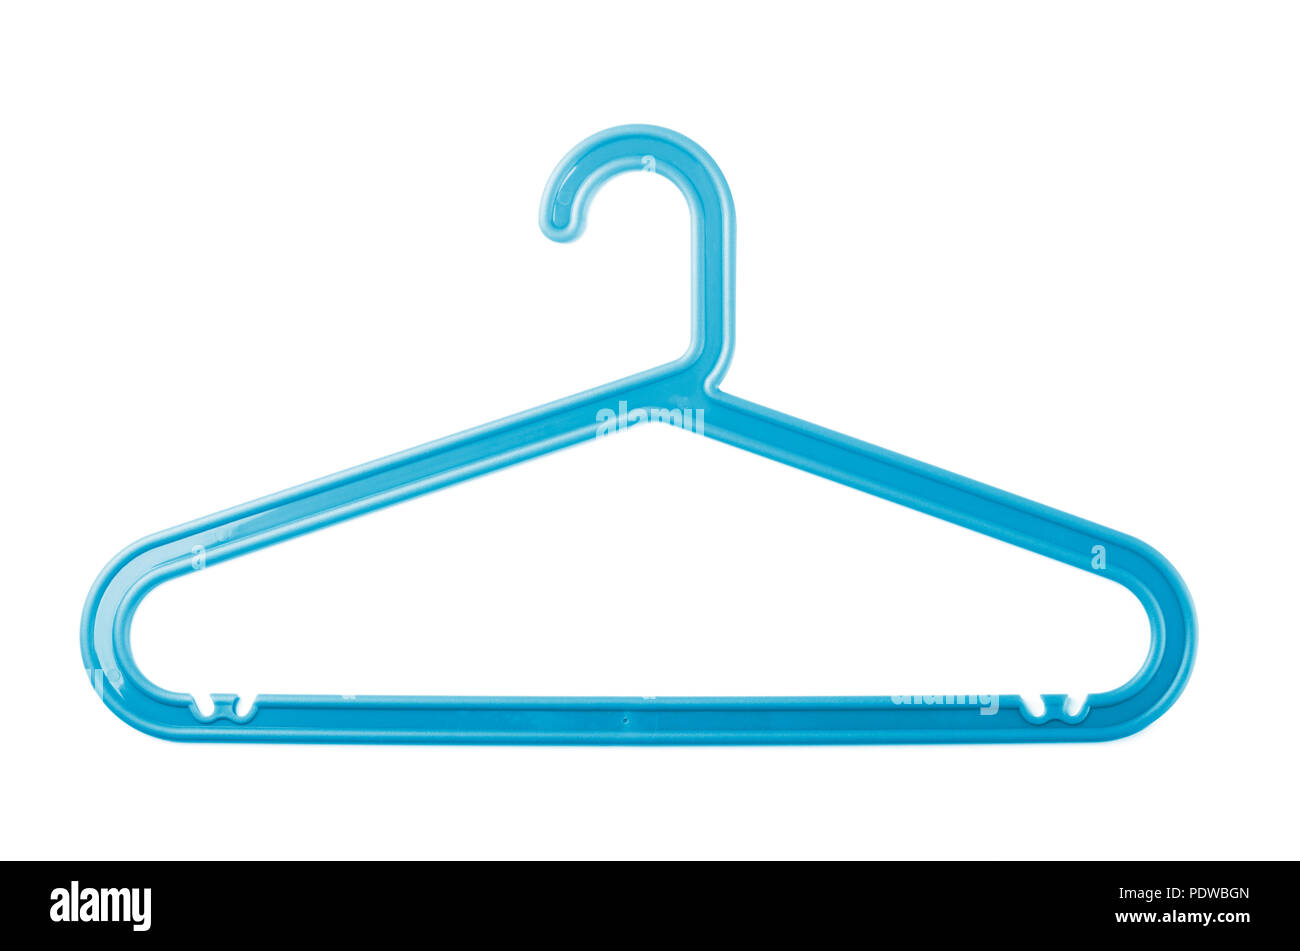 Coat Hanger Cut Out Stock Images & Pictures - Alamy